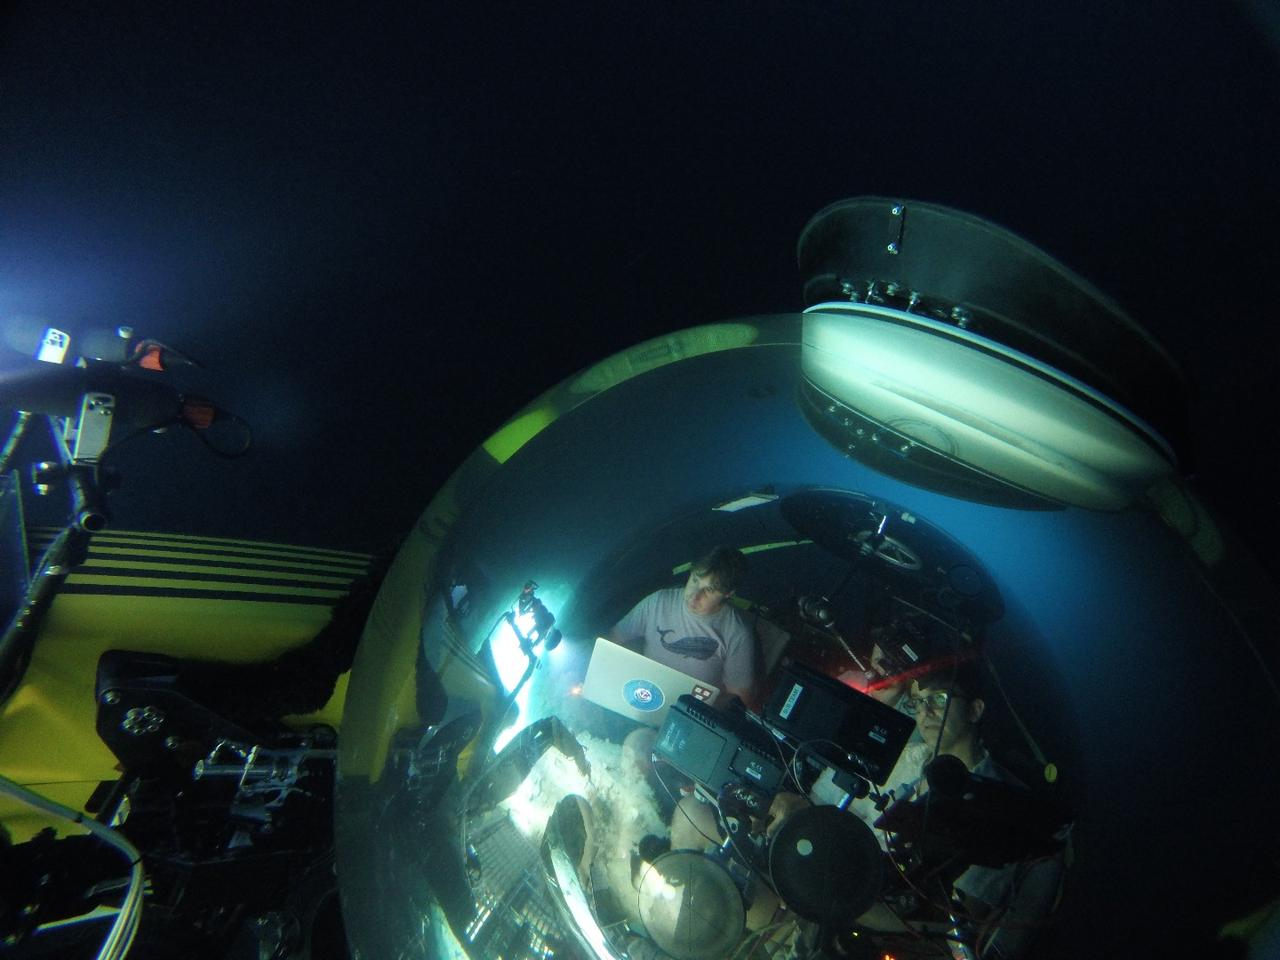 The technology has been put to the test aboard a three-person submarine in previously-unexplored ecosystems, deep in the ocean around the Fernando de Noronha Archipelago of Brazil